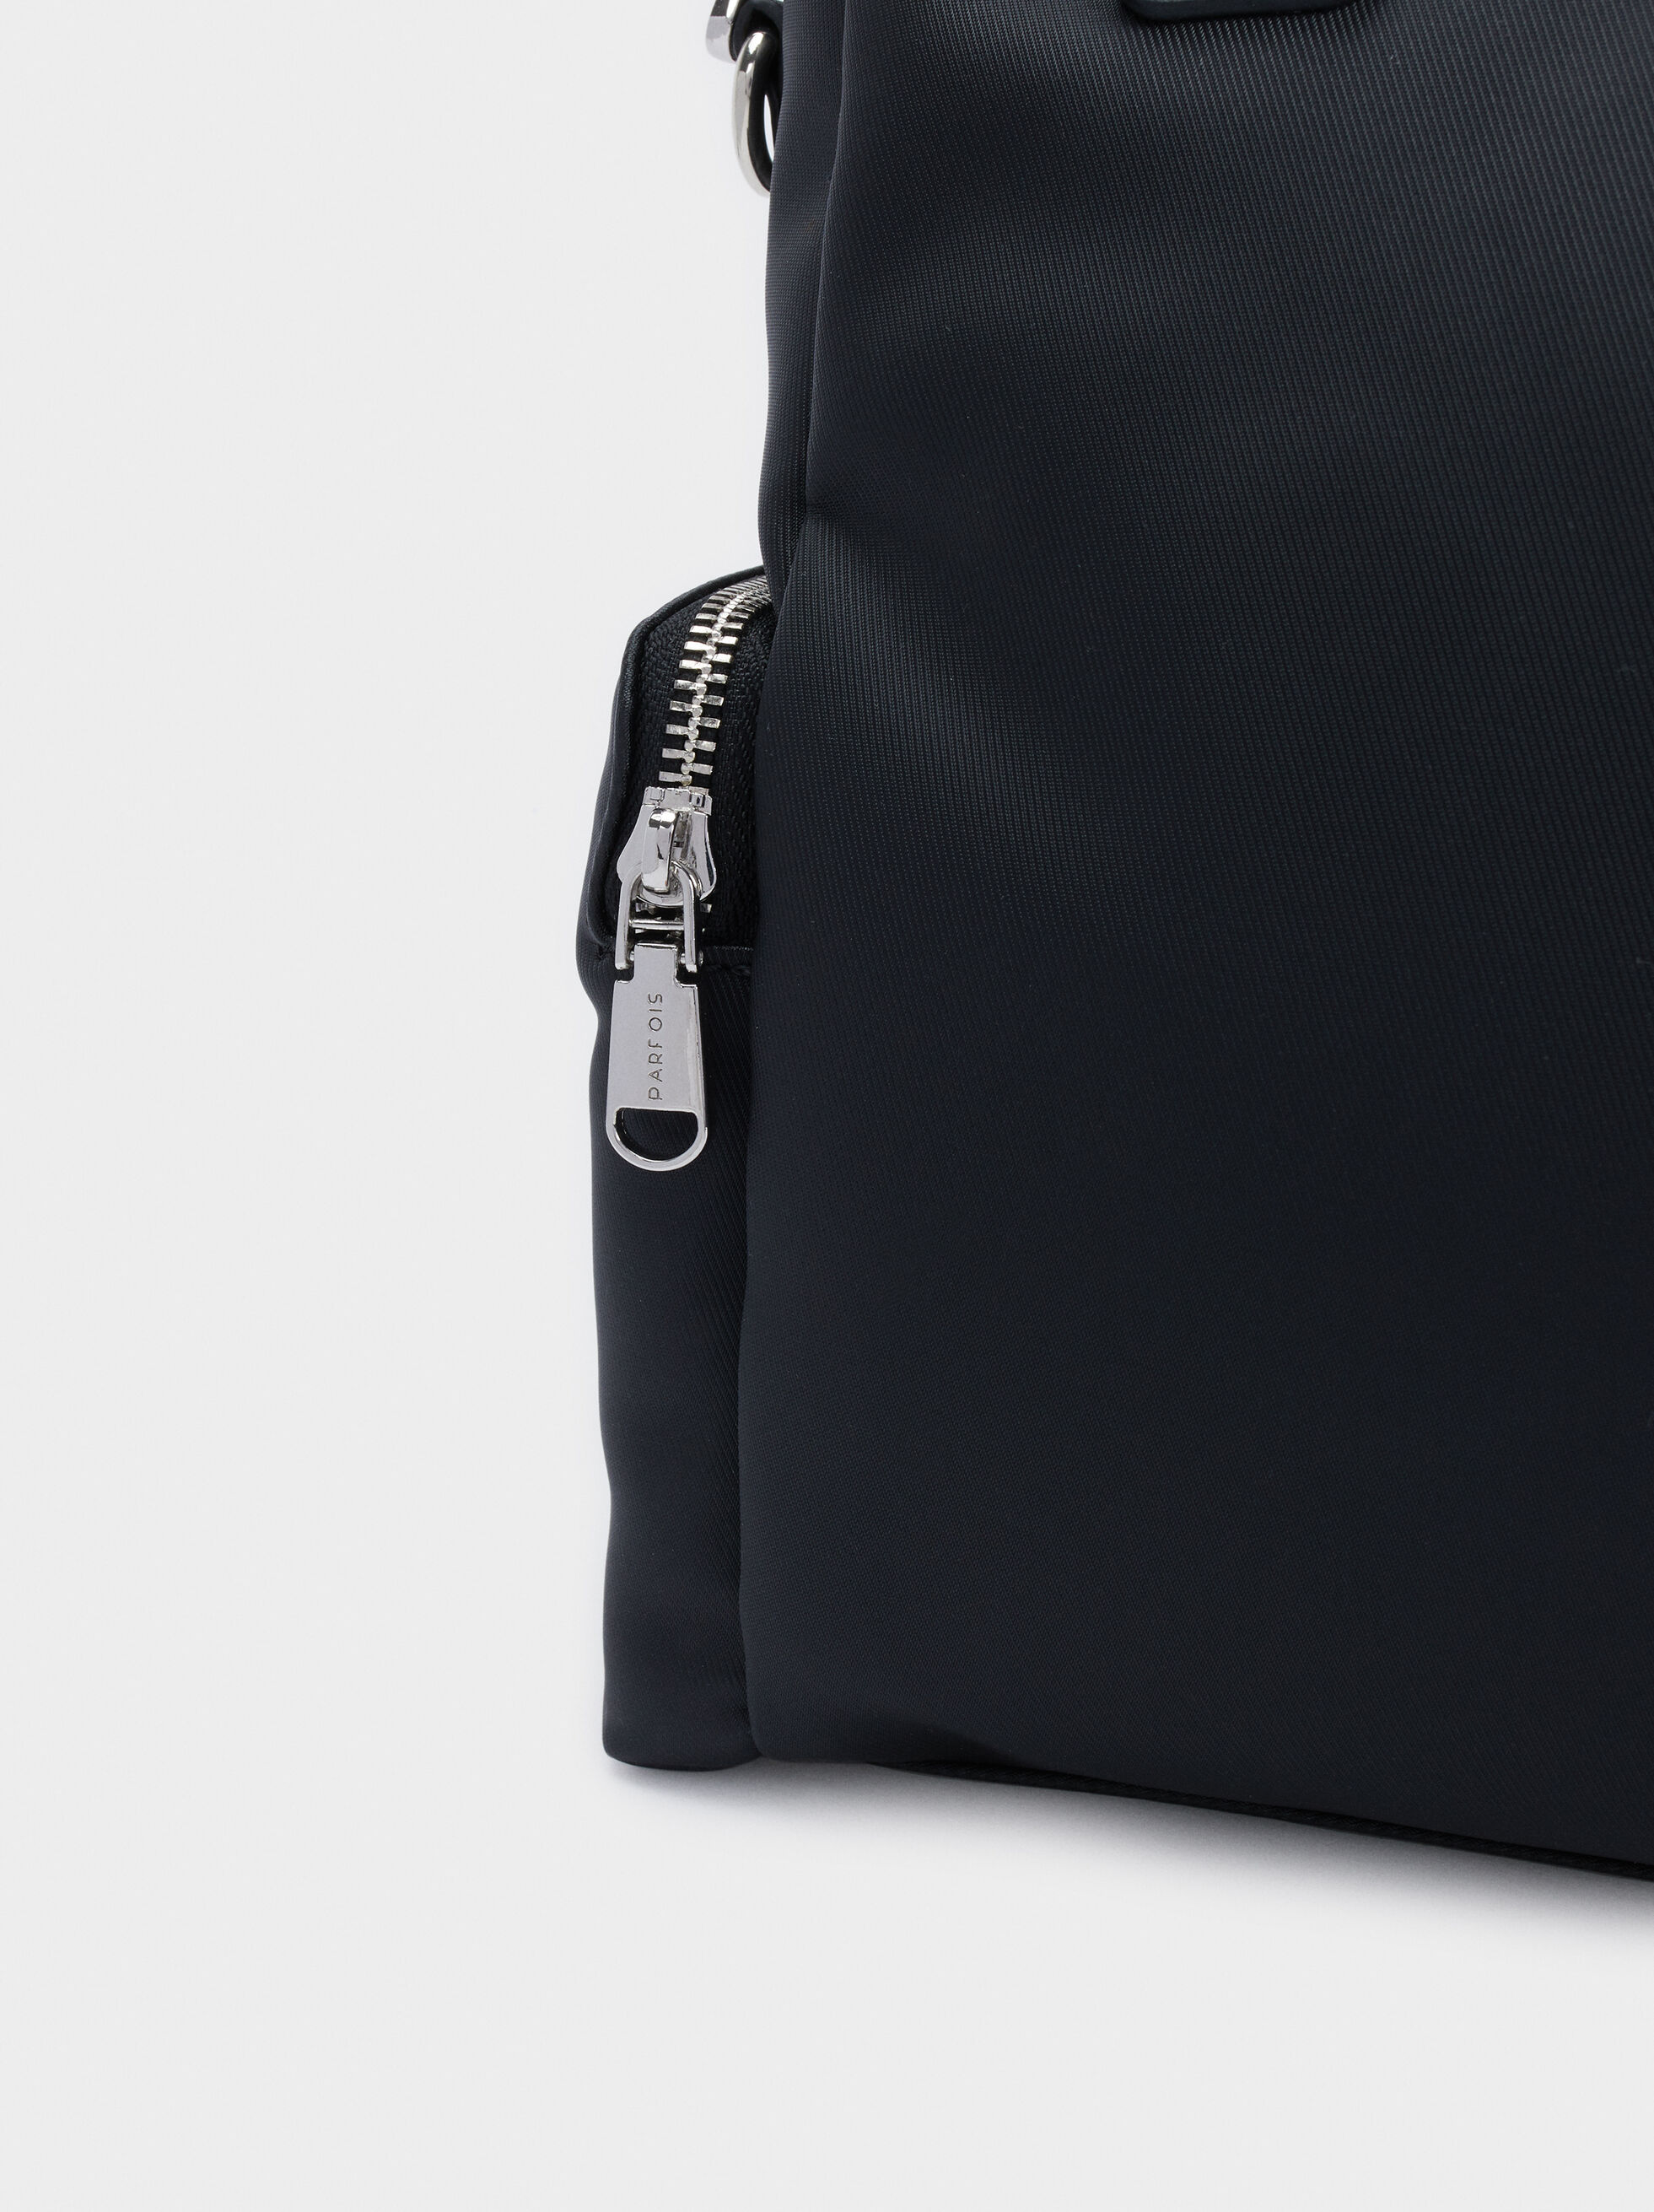 Multi-Way Backpack With Detachable Straps, Black, hi-res